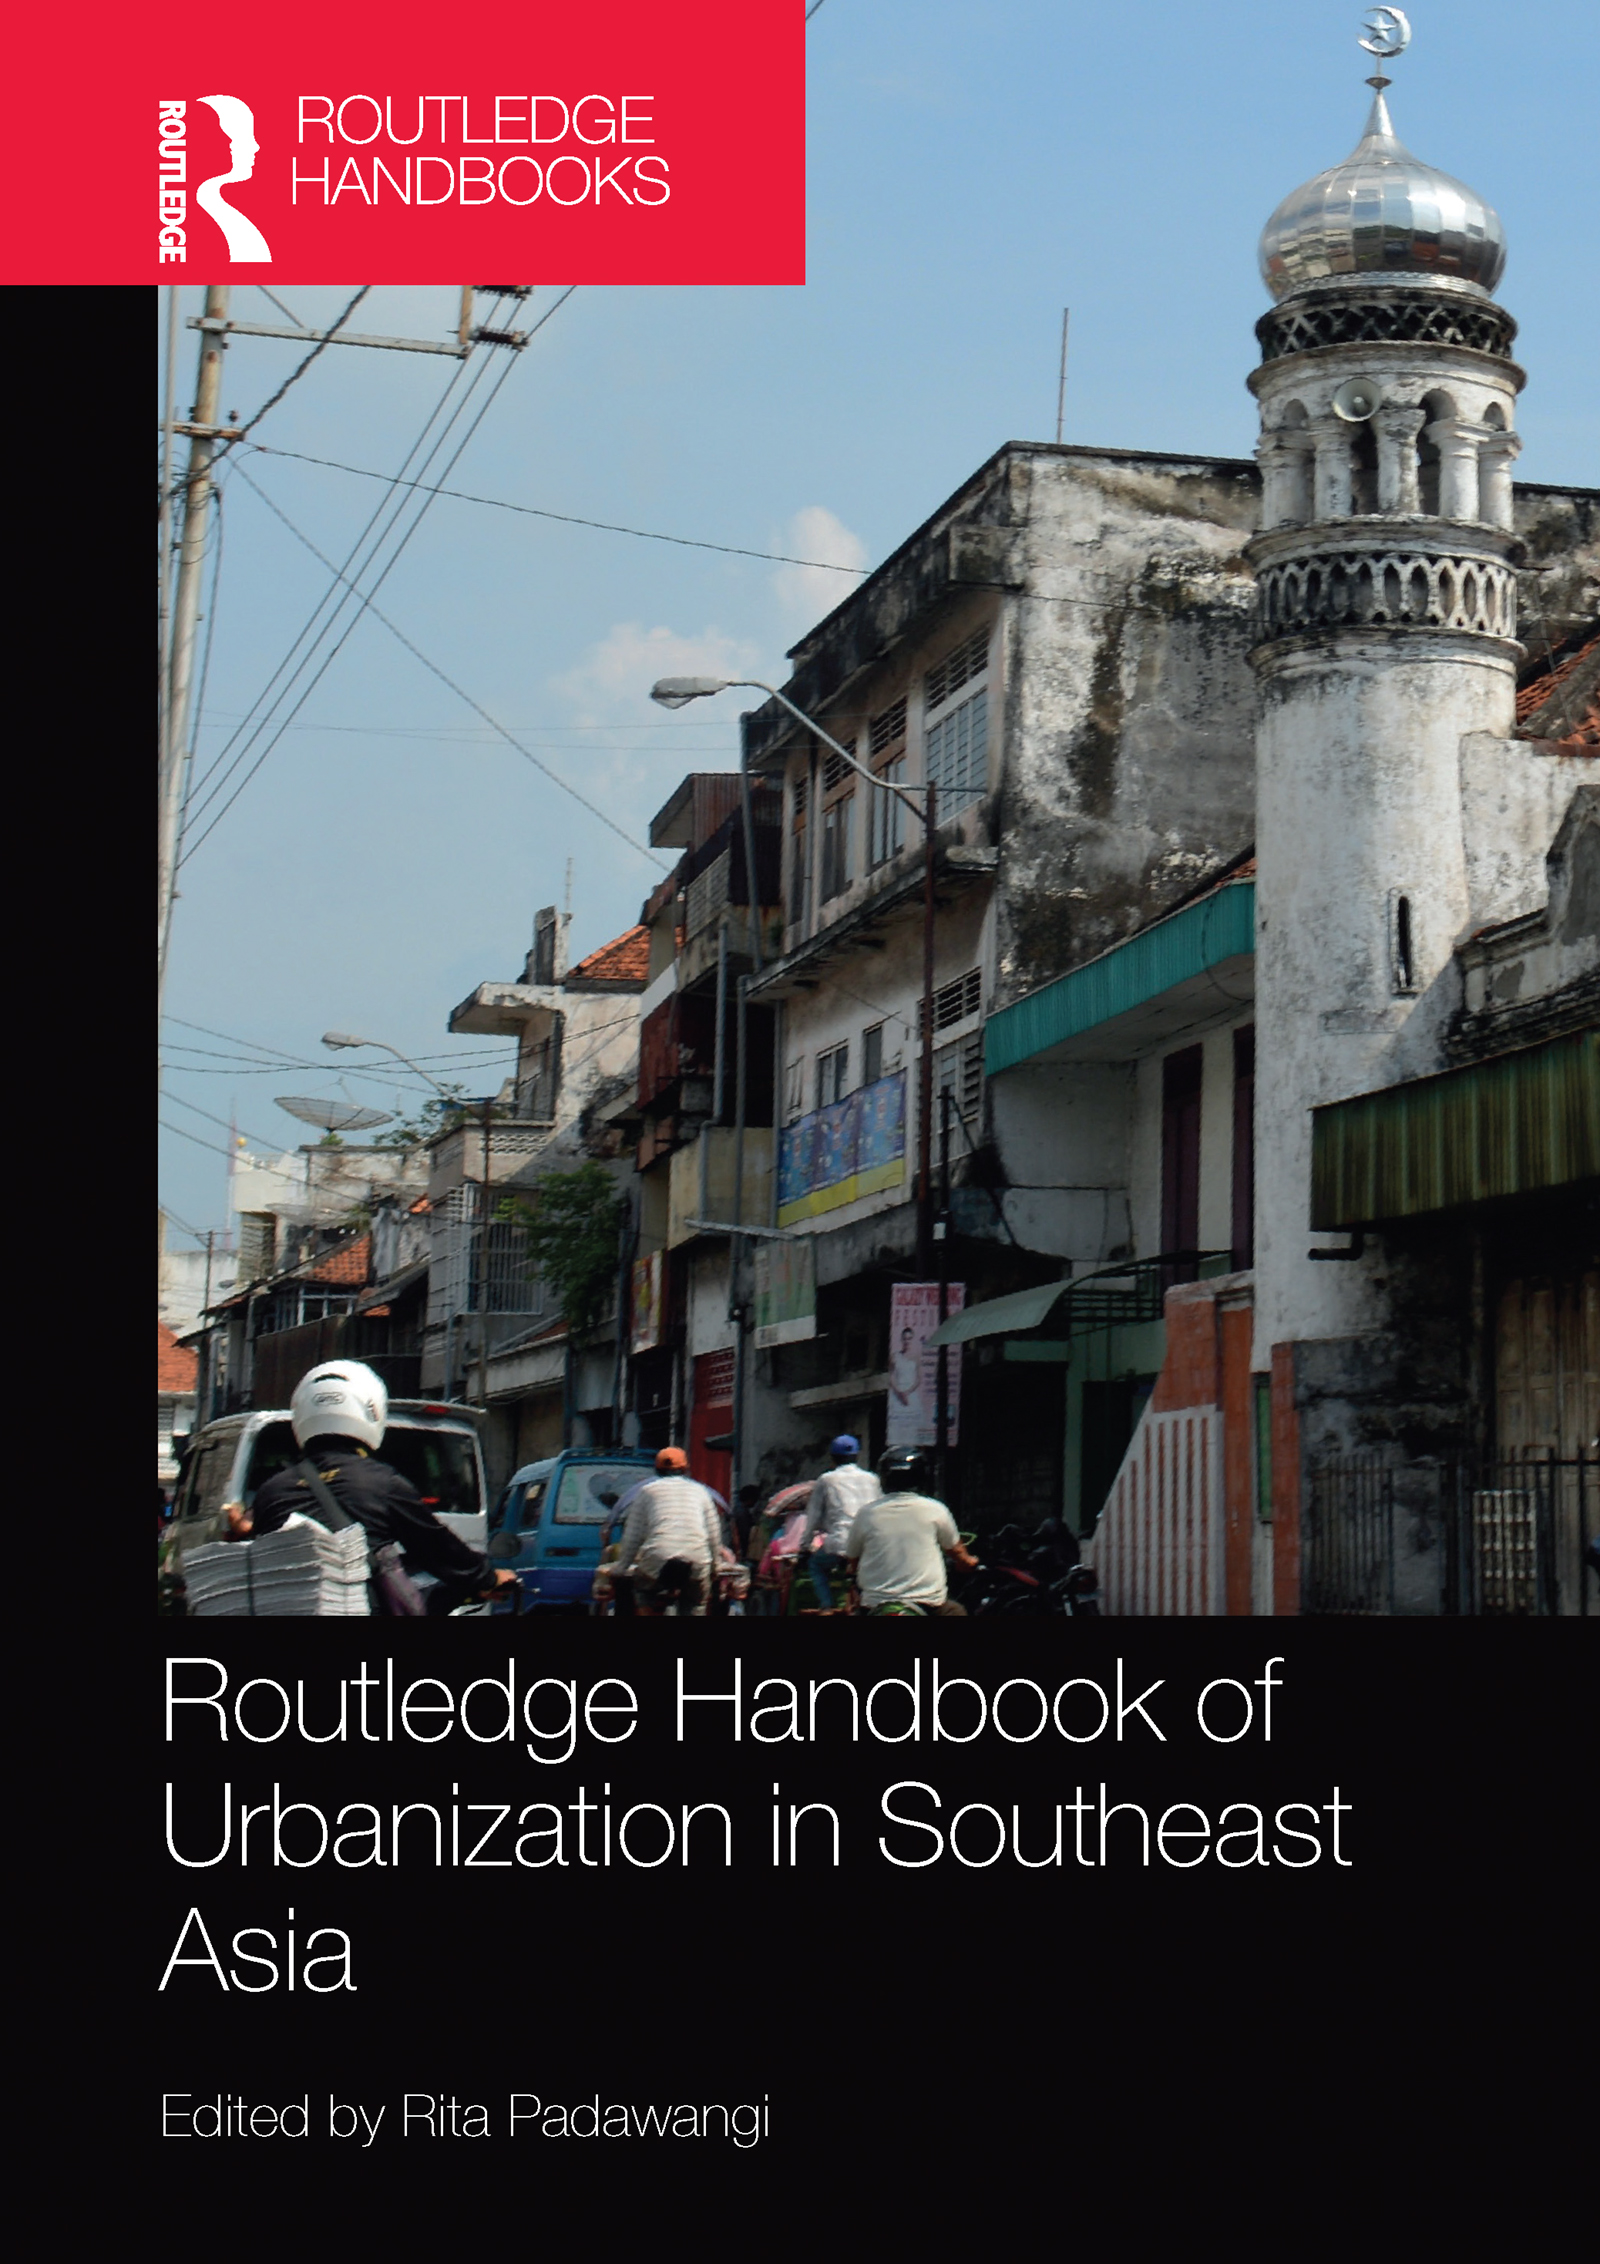 Routledge Handbook of Urbanization in Southeast Asia